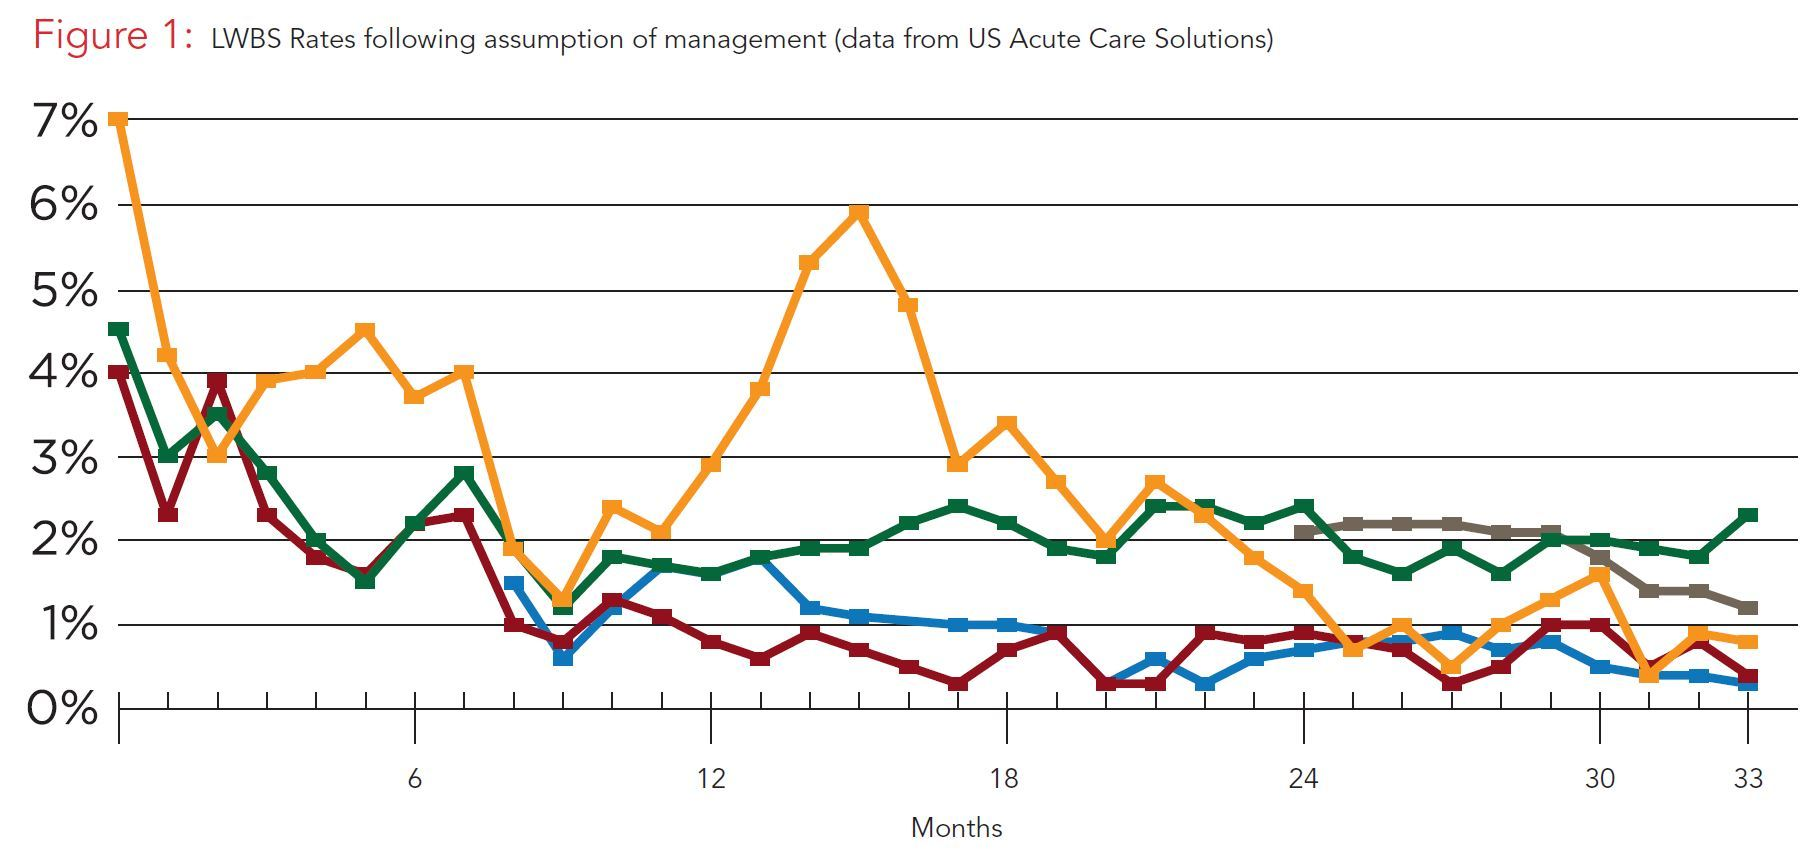 LWBS Rates Following Assumption of Management